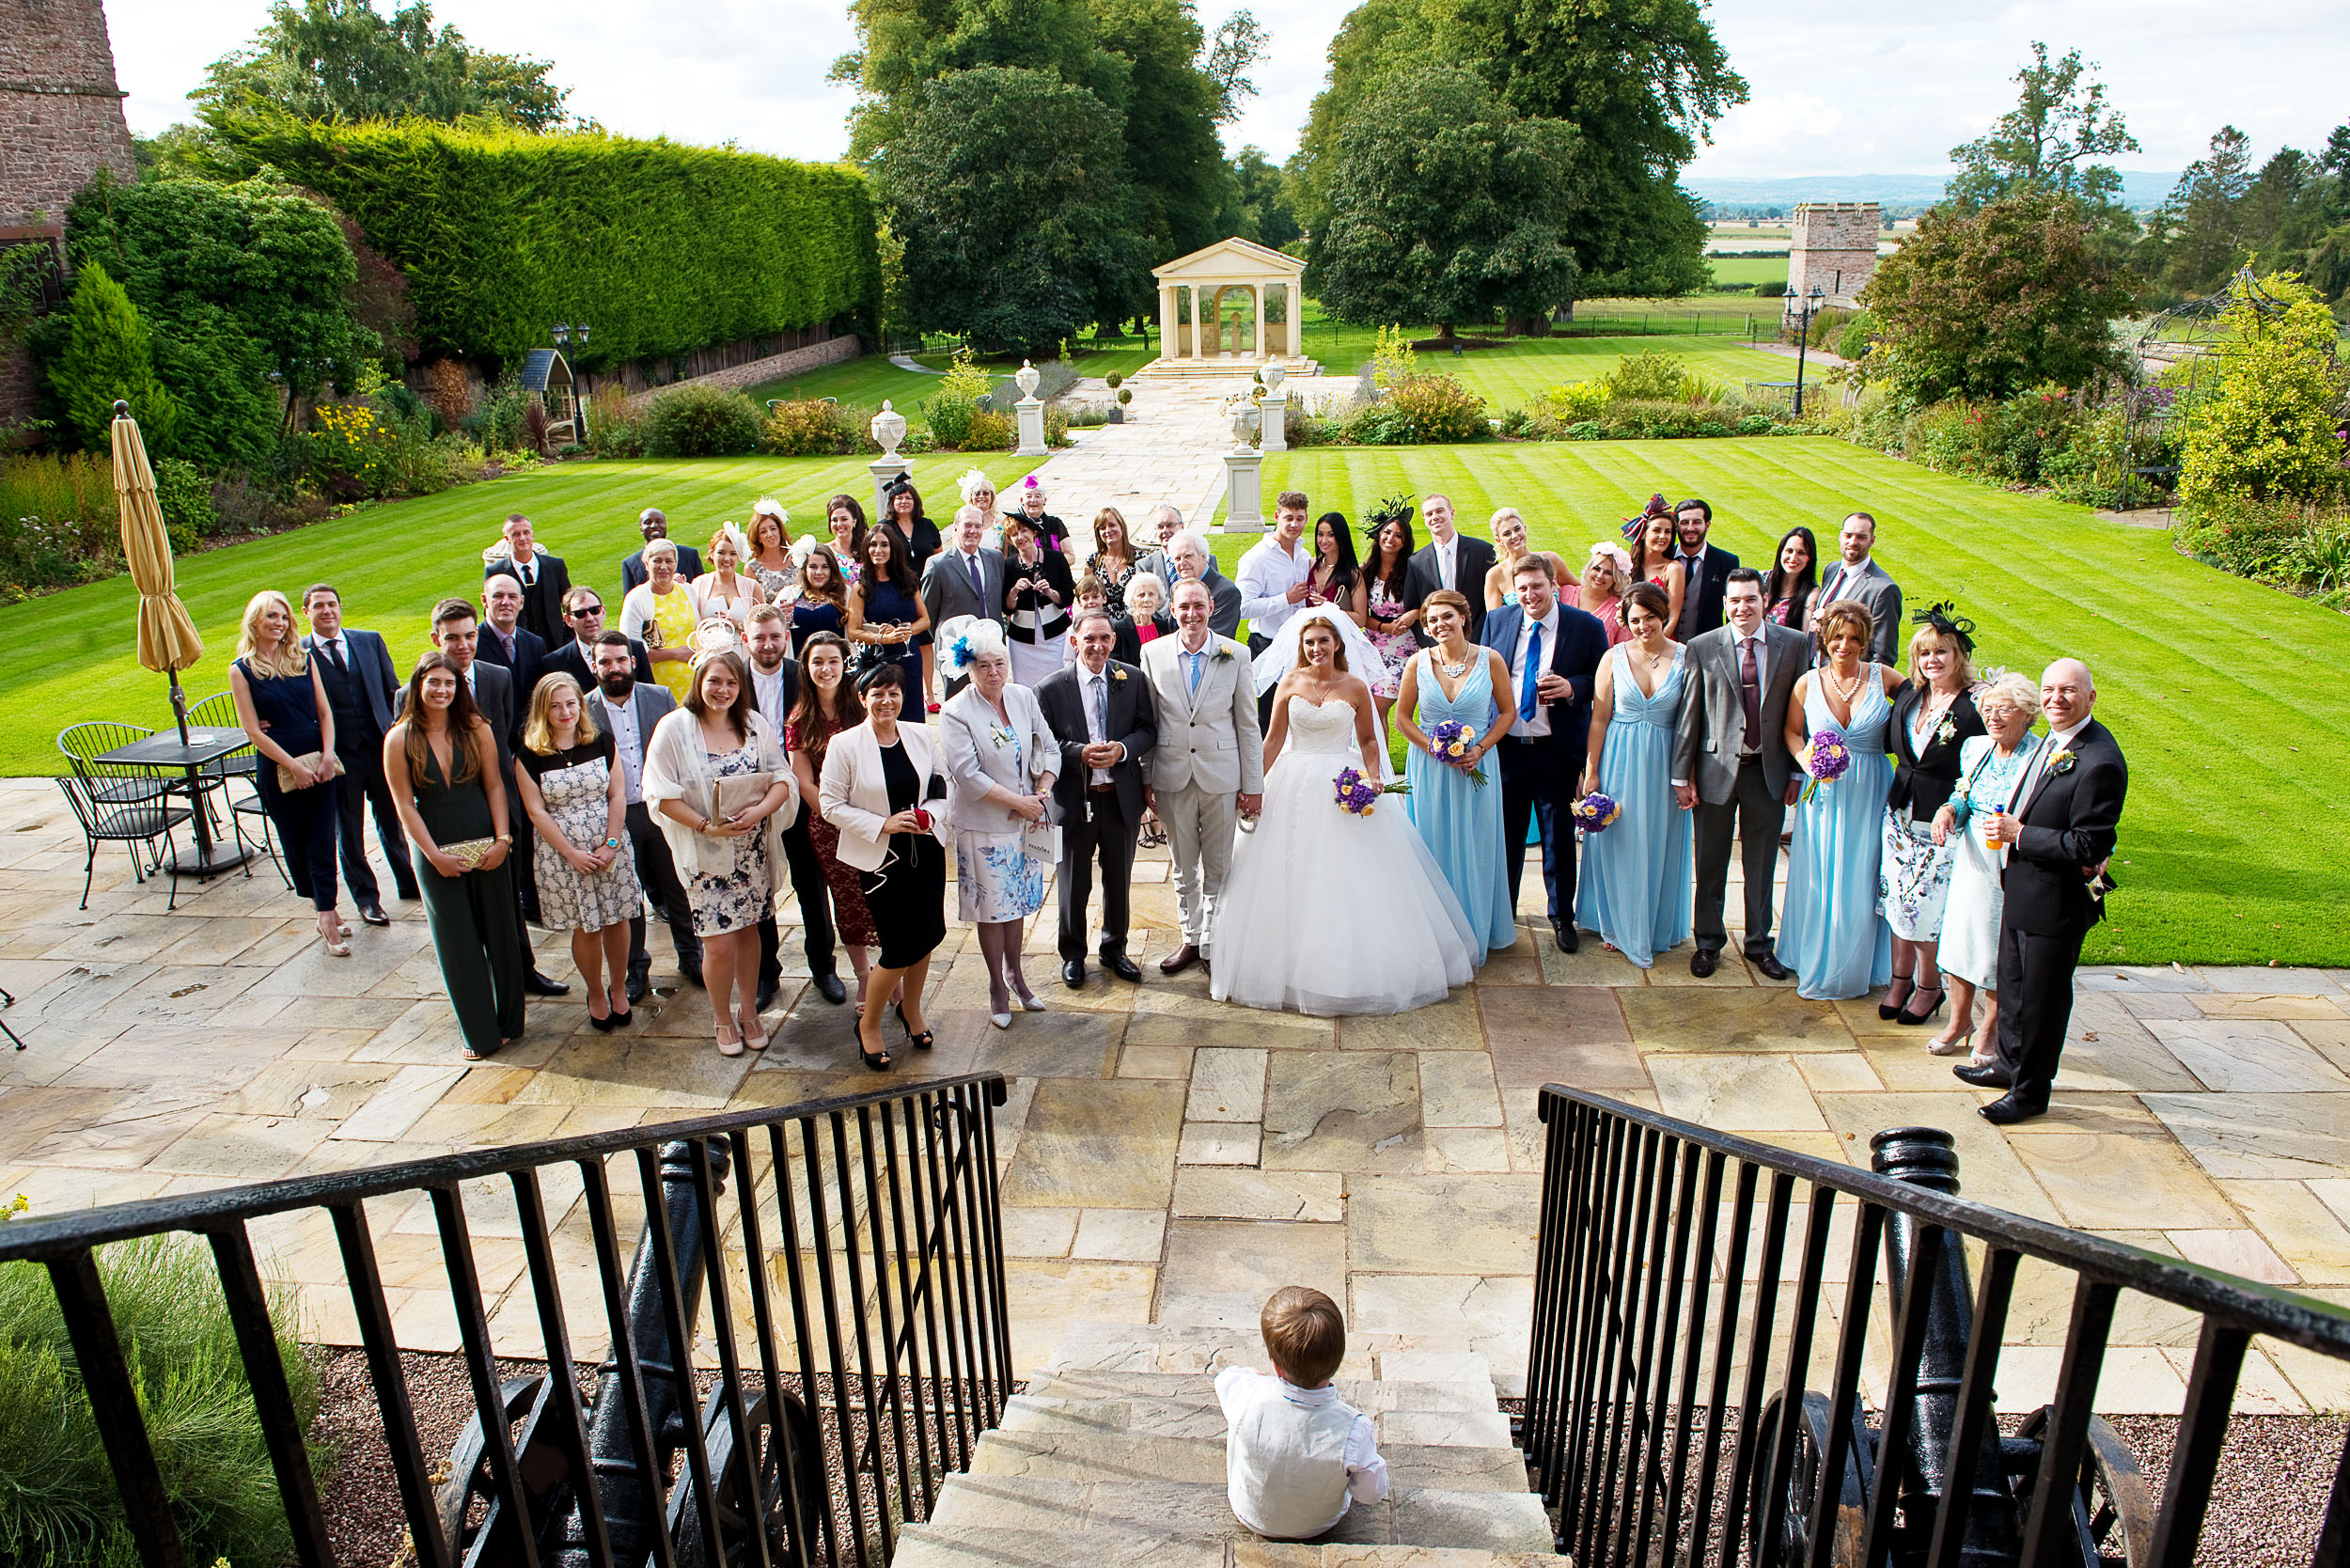 The little boy is the son of the bride and groom who wanted to help me organise the photograph